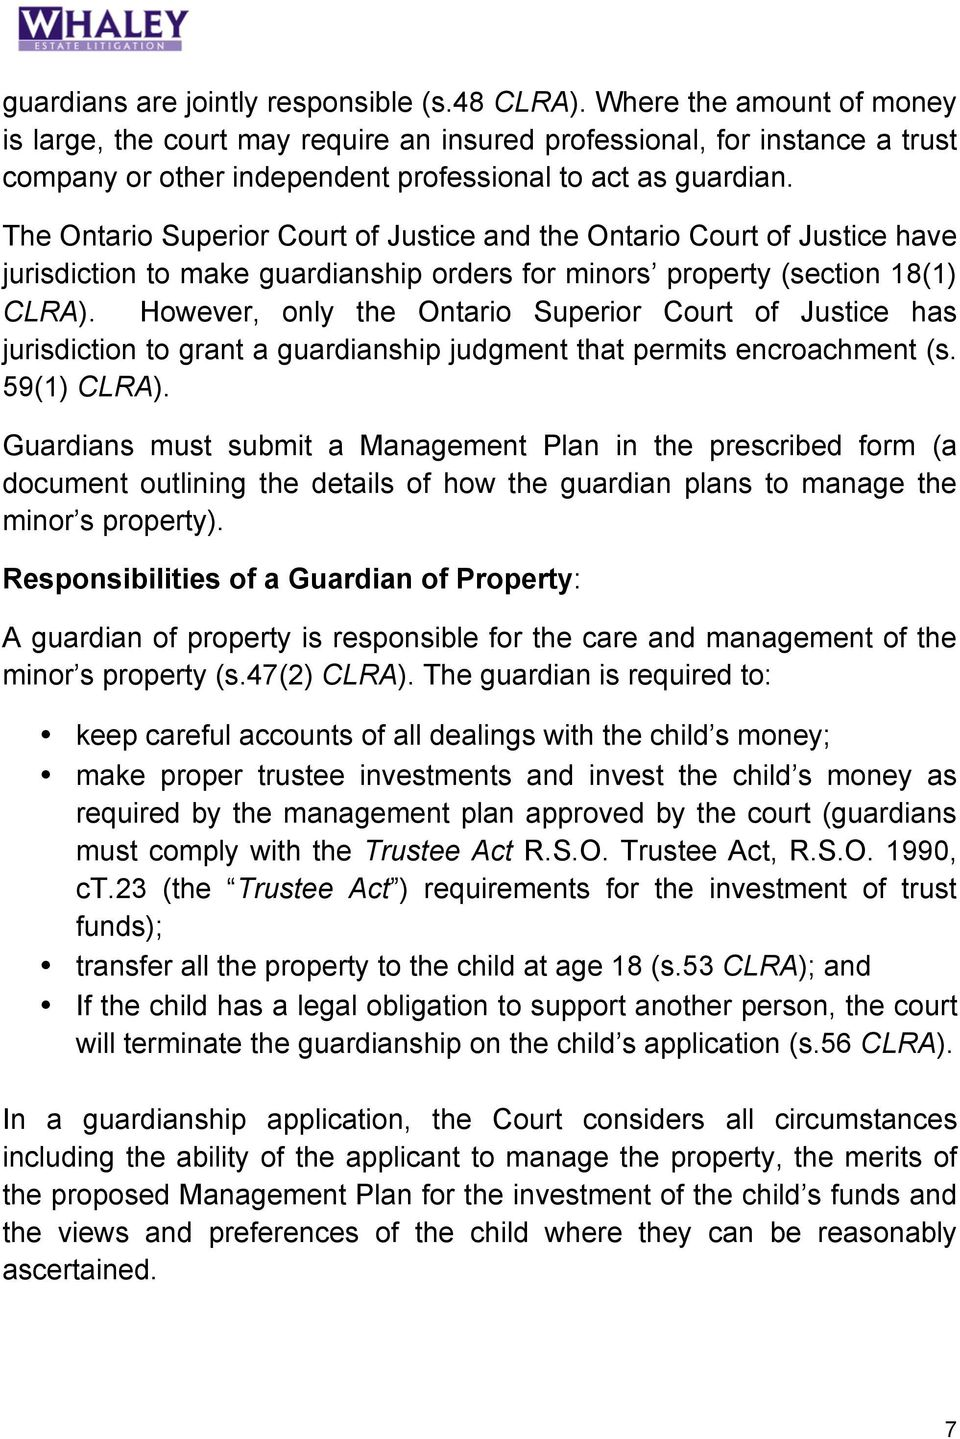 The Ontario Superior Court of Justice and the Ontario Court of Justice have jurisdiction to make guardianship orders for minors property (section 18(1) CLRA).